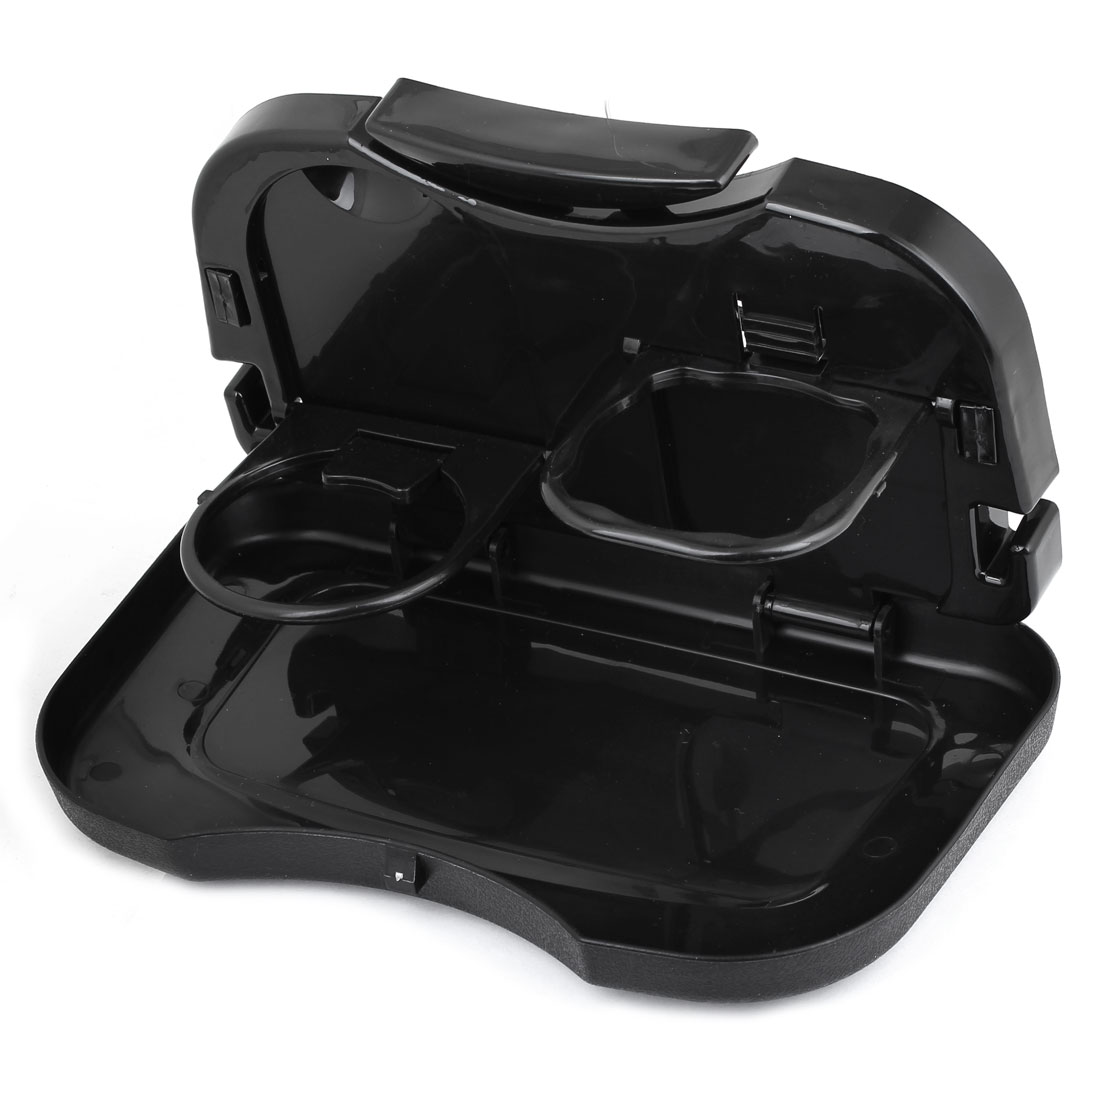 Durable Plastic Folding Back Seat Car Beverage Cup Holder Stand for Snack Beverage Black